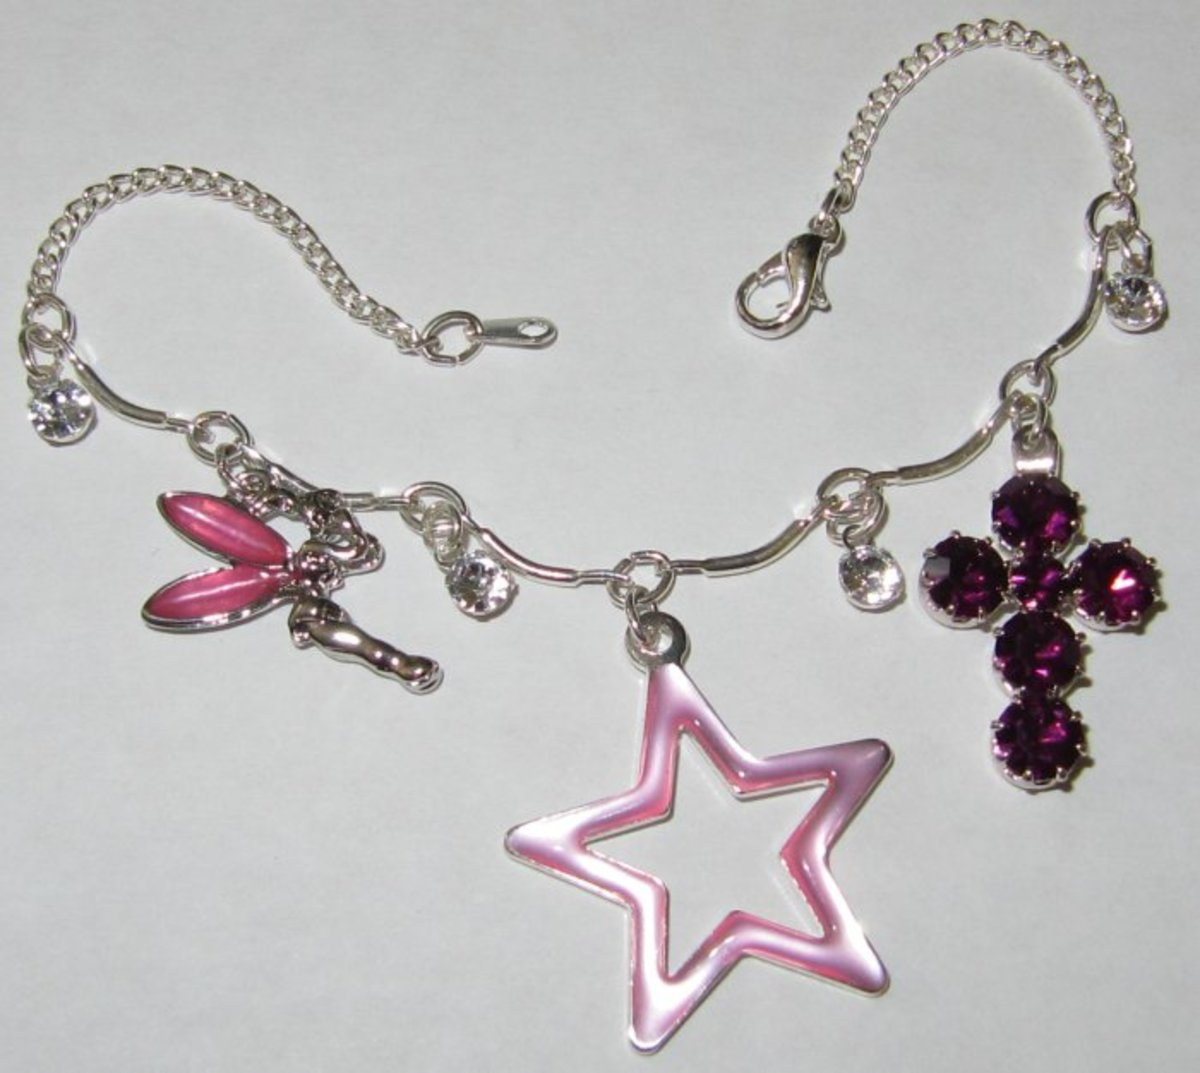 Twenty Hints and Tips for Successful Jewellery Making